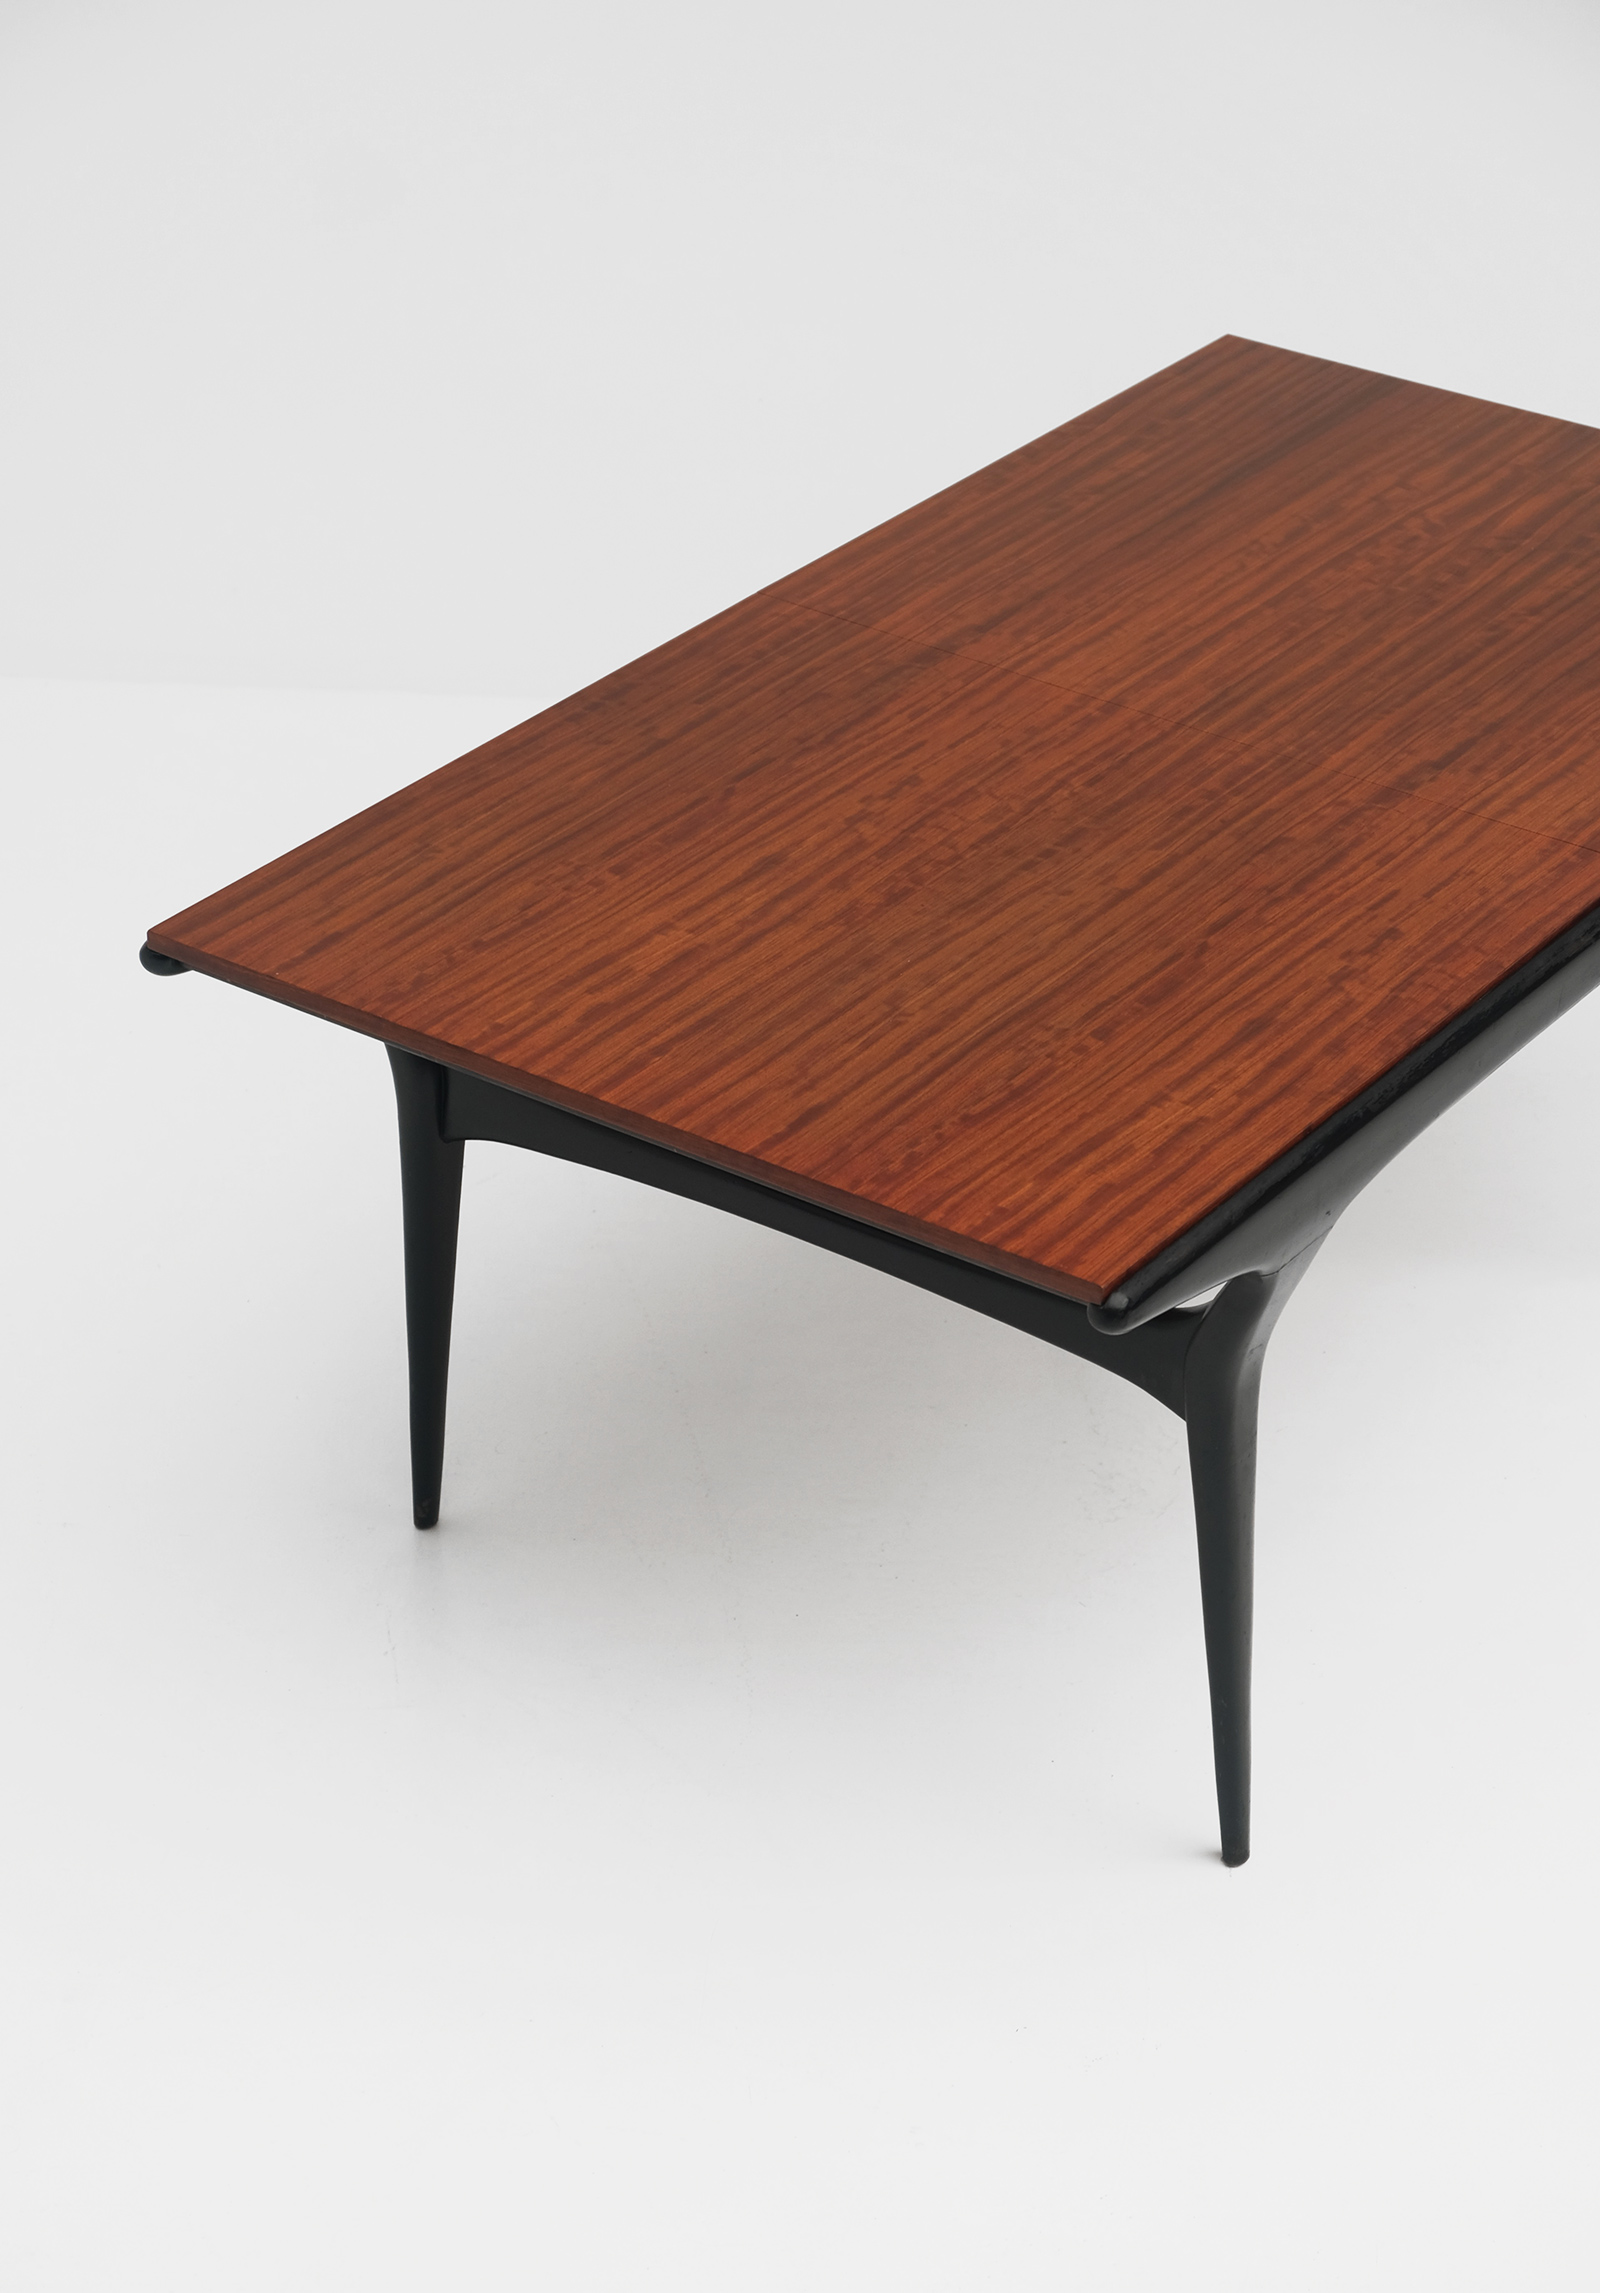 Alfred Hendrickx rare Belform Dining Table 1950simage 11